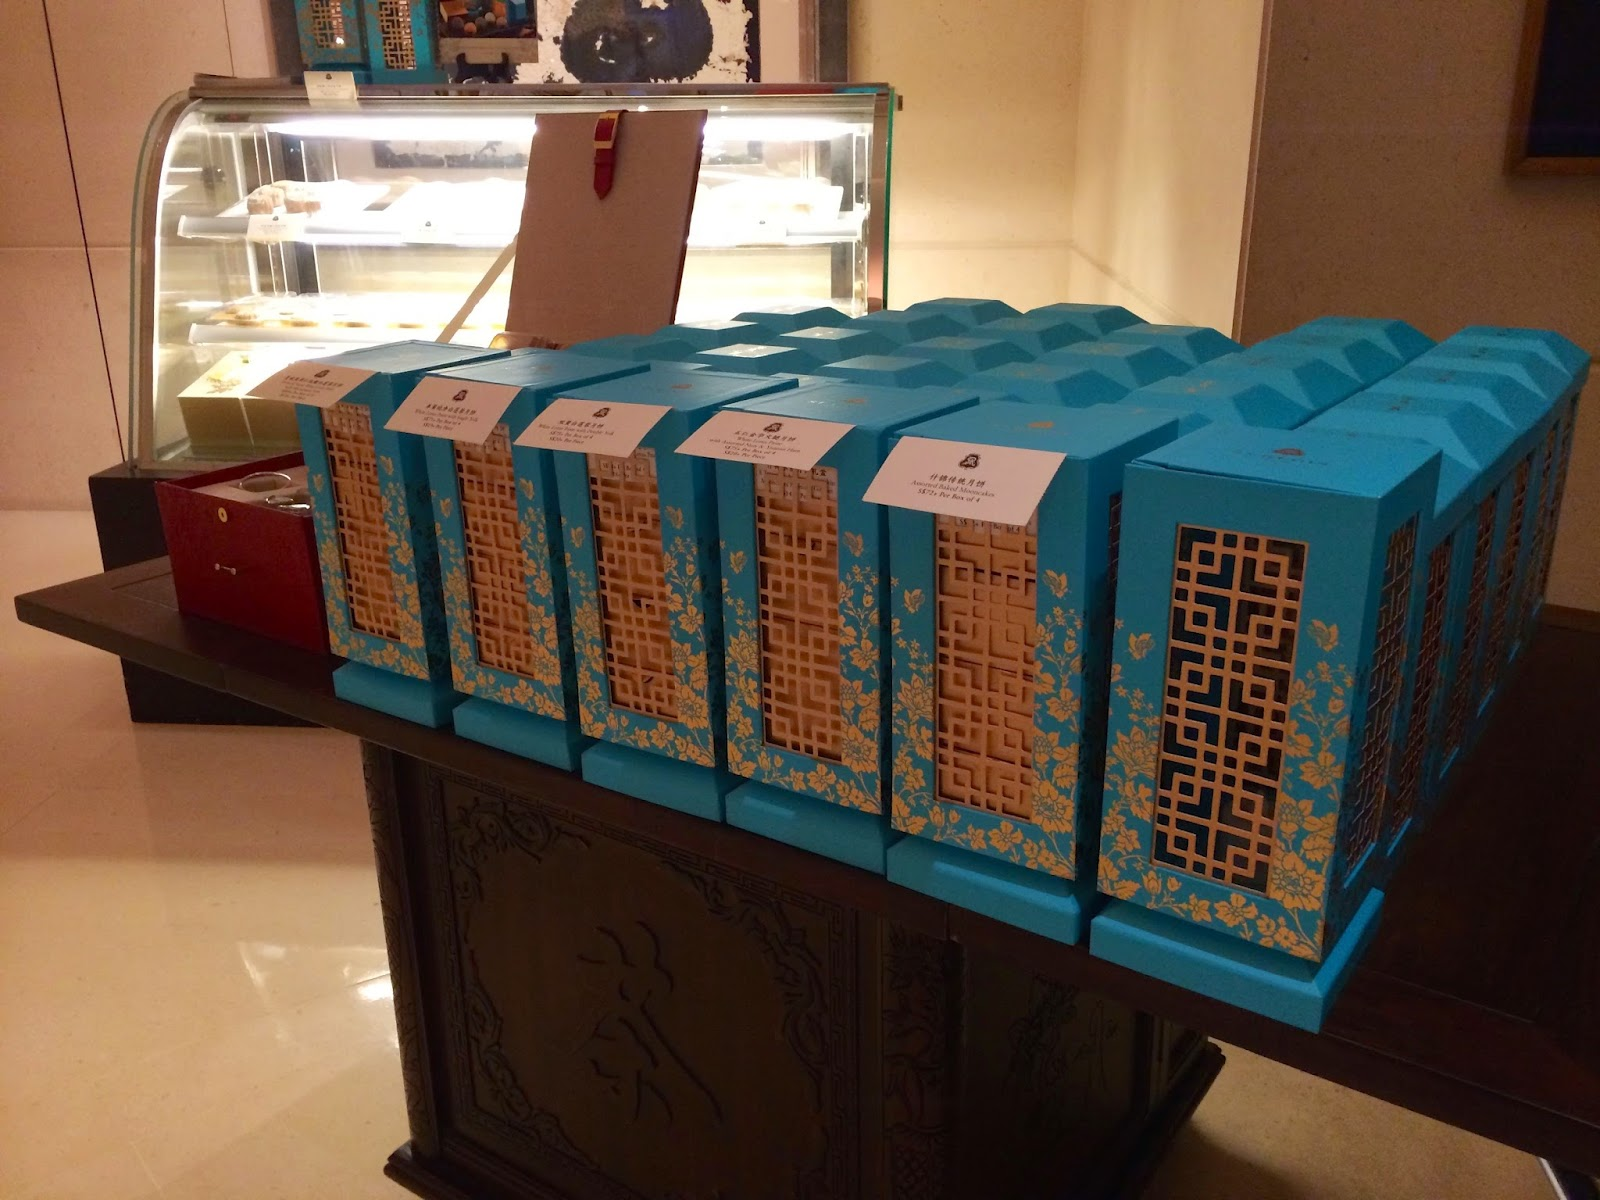 Mooncakes at Yang Ting Singapore